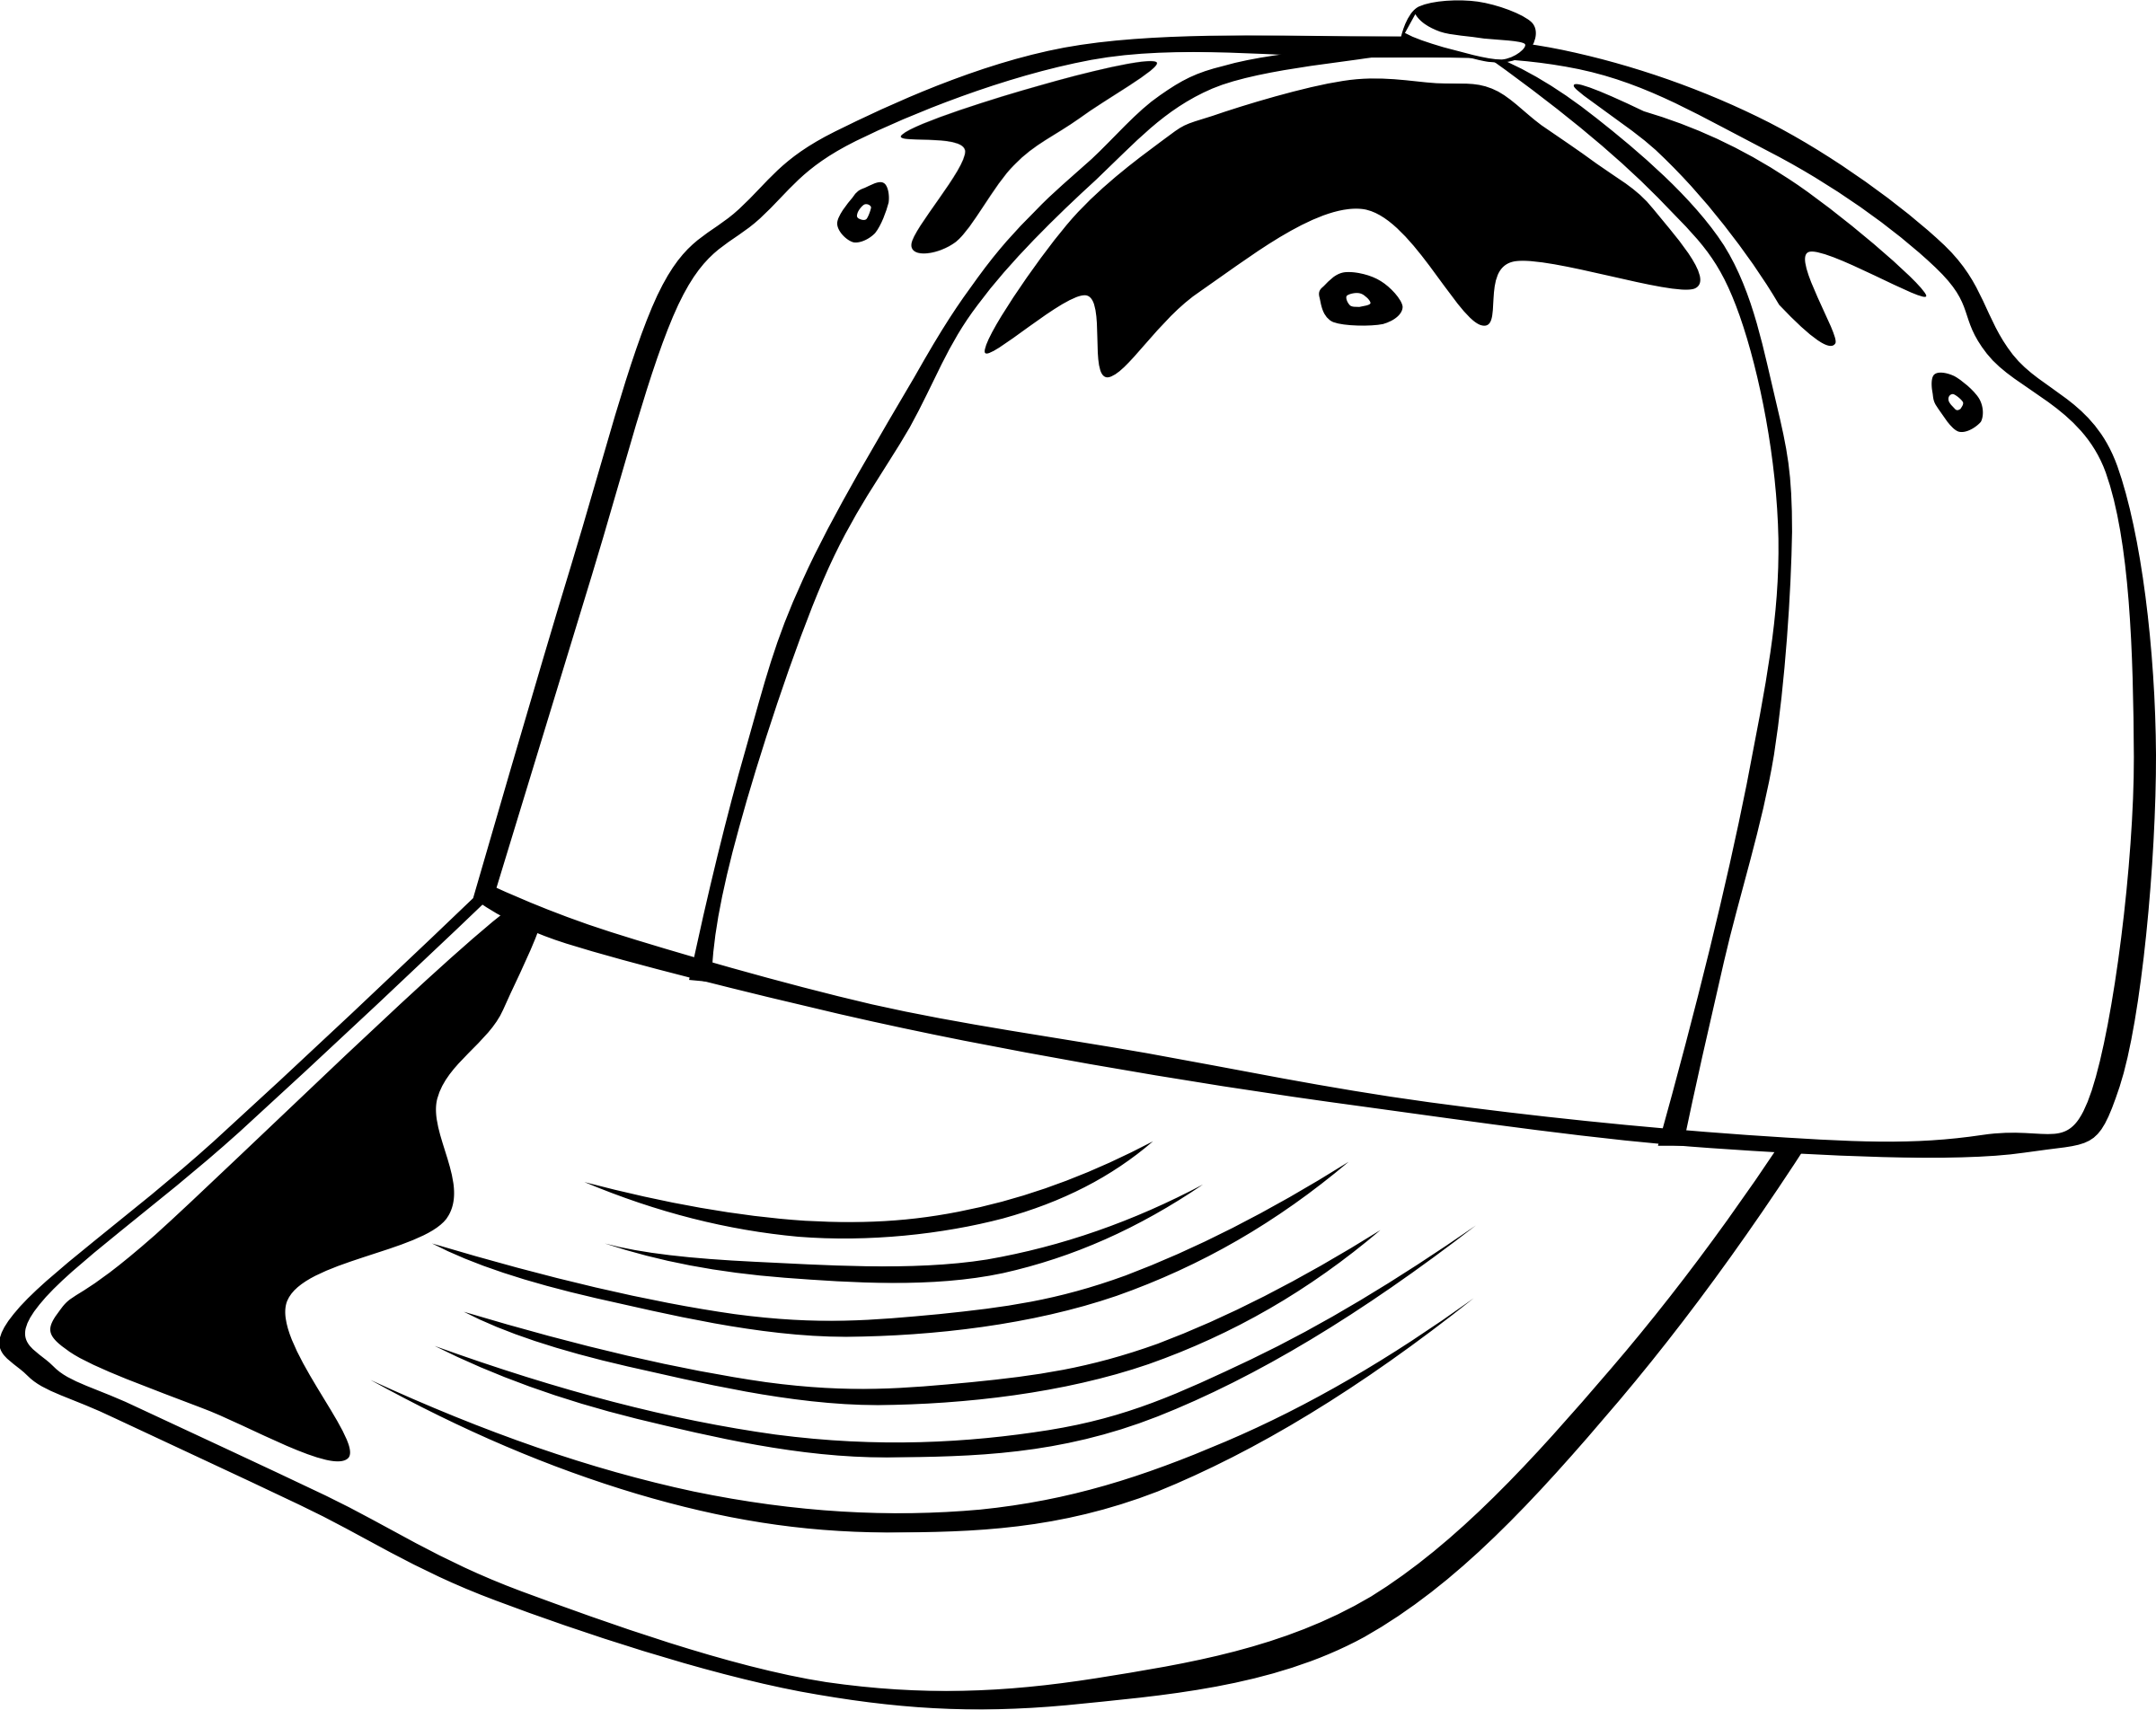 Baseball caps clipart black and white download Clipart - Baseball cap black and white download